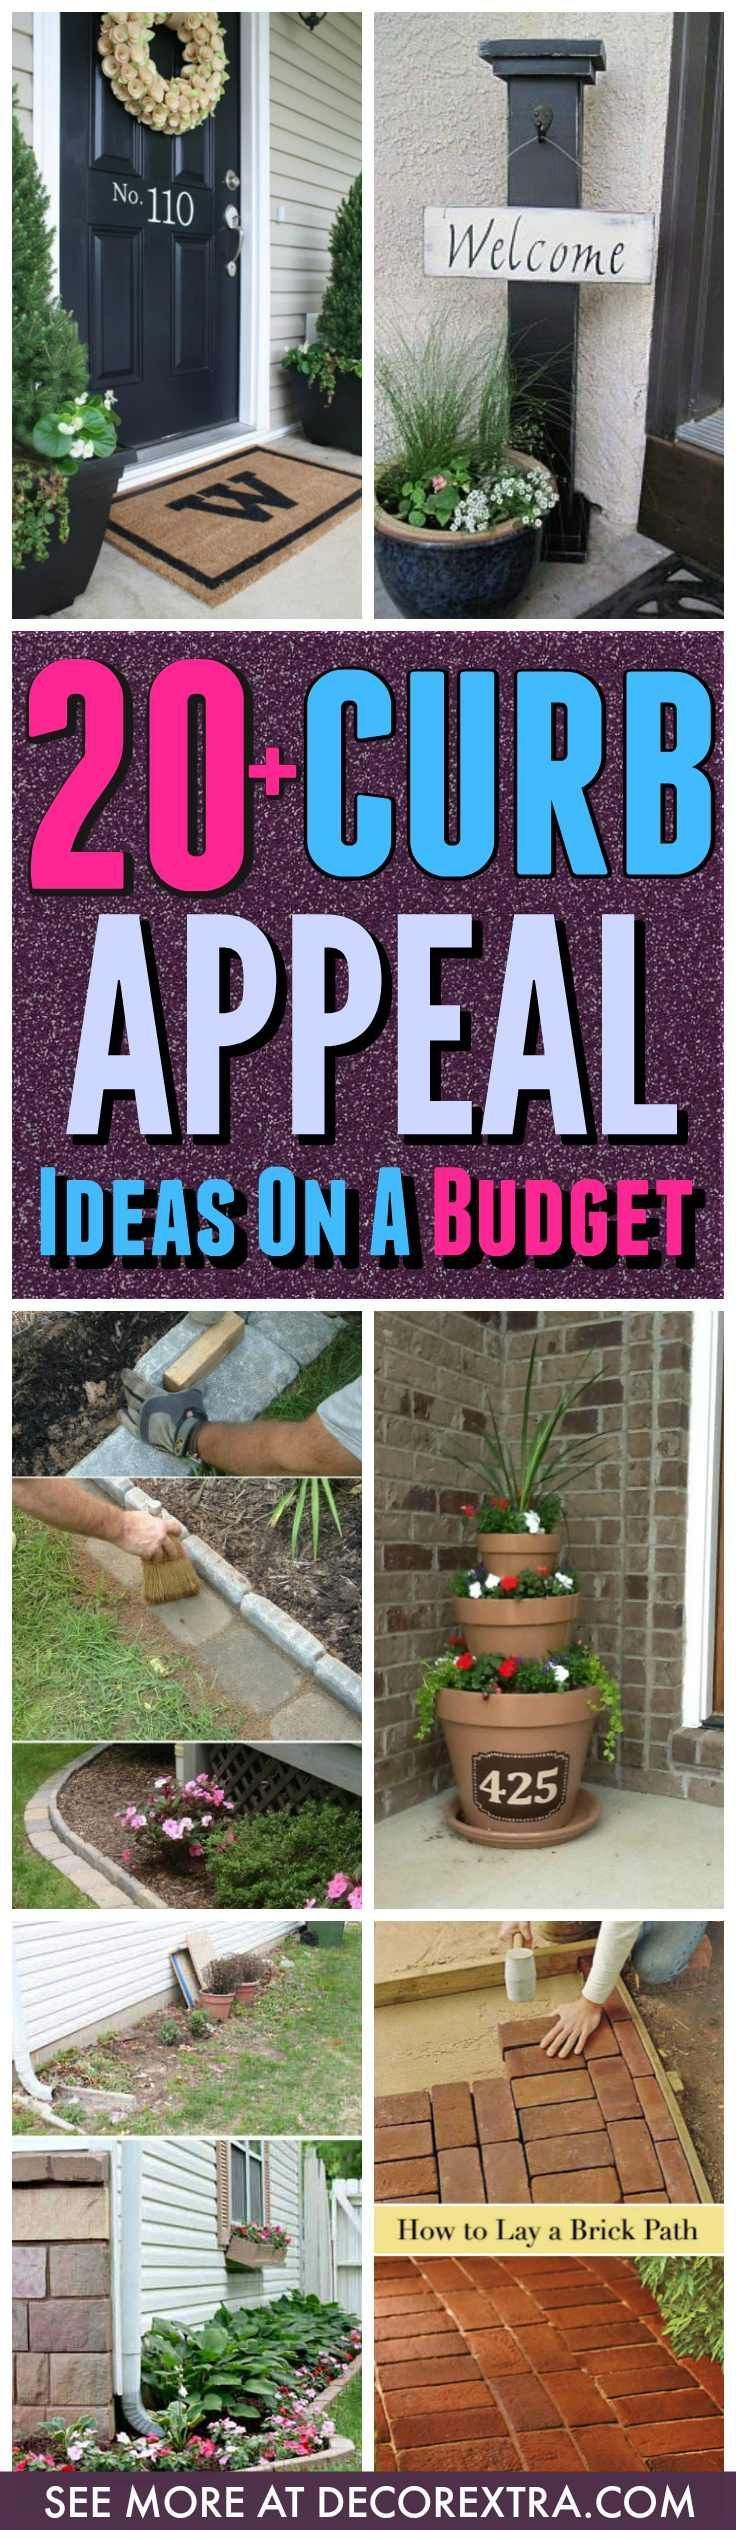 Curb ideas on a budget. Today we present to you a collection of 20+ Easy … #budget #inspiration #heaven #ideas #near